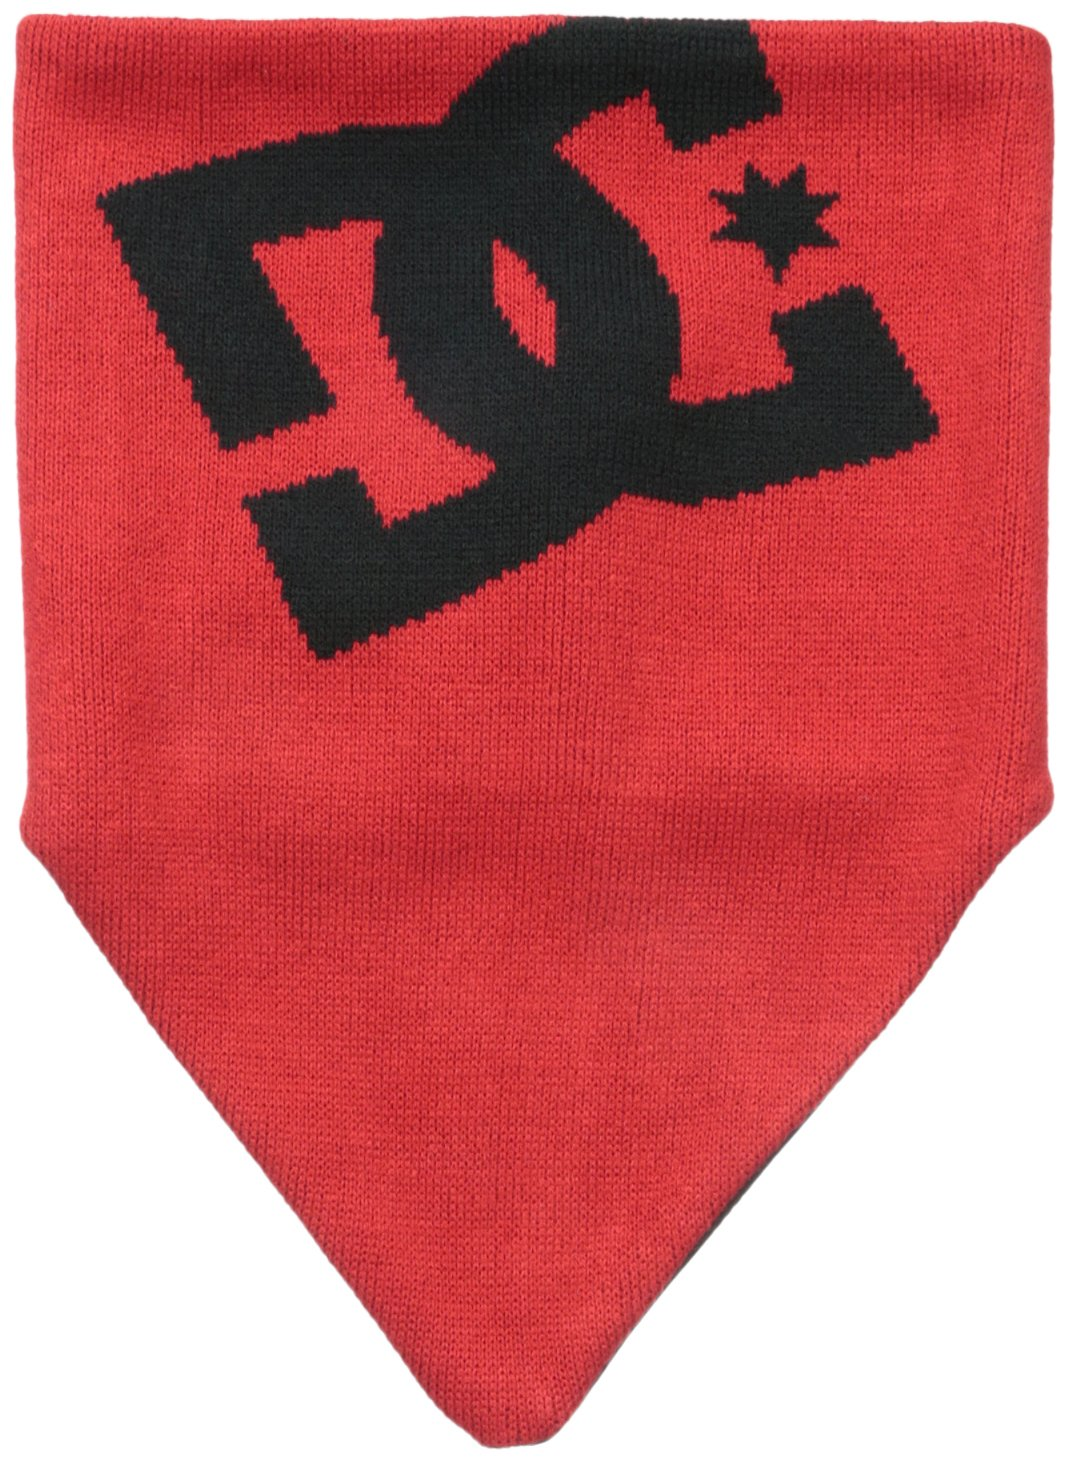 DC Men's Yad Neck Warmer, Racing Red, One Size